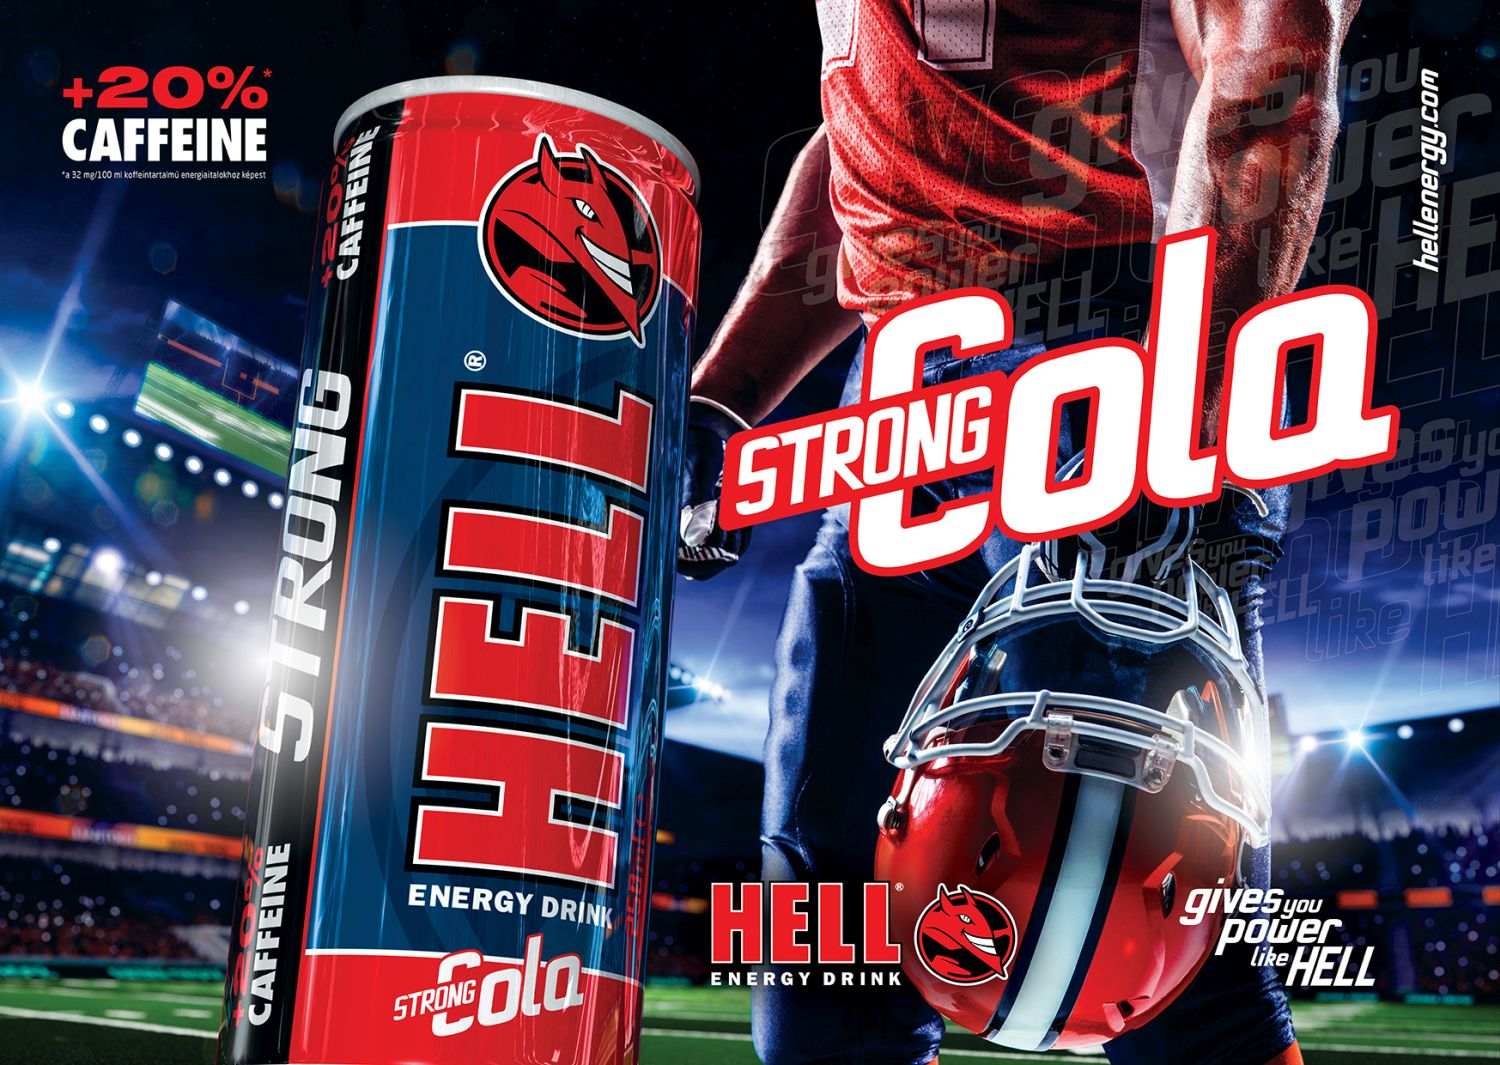 hell_strong_cola